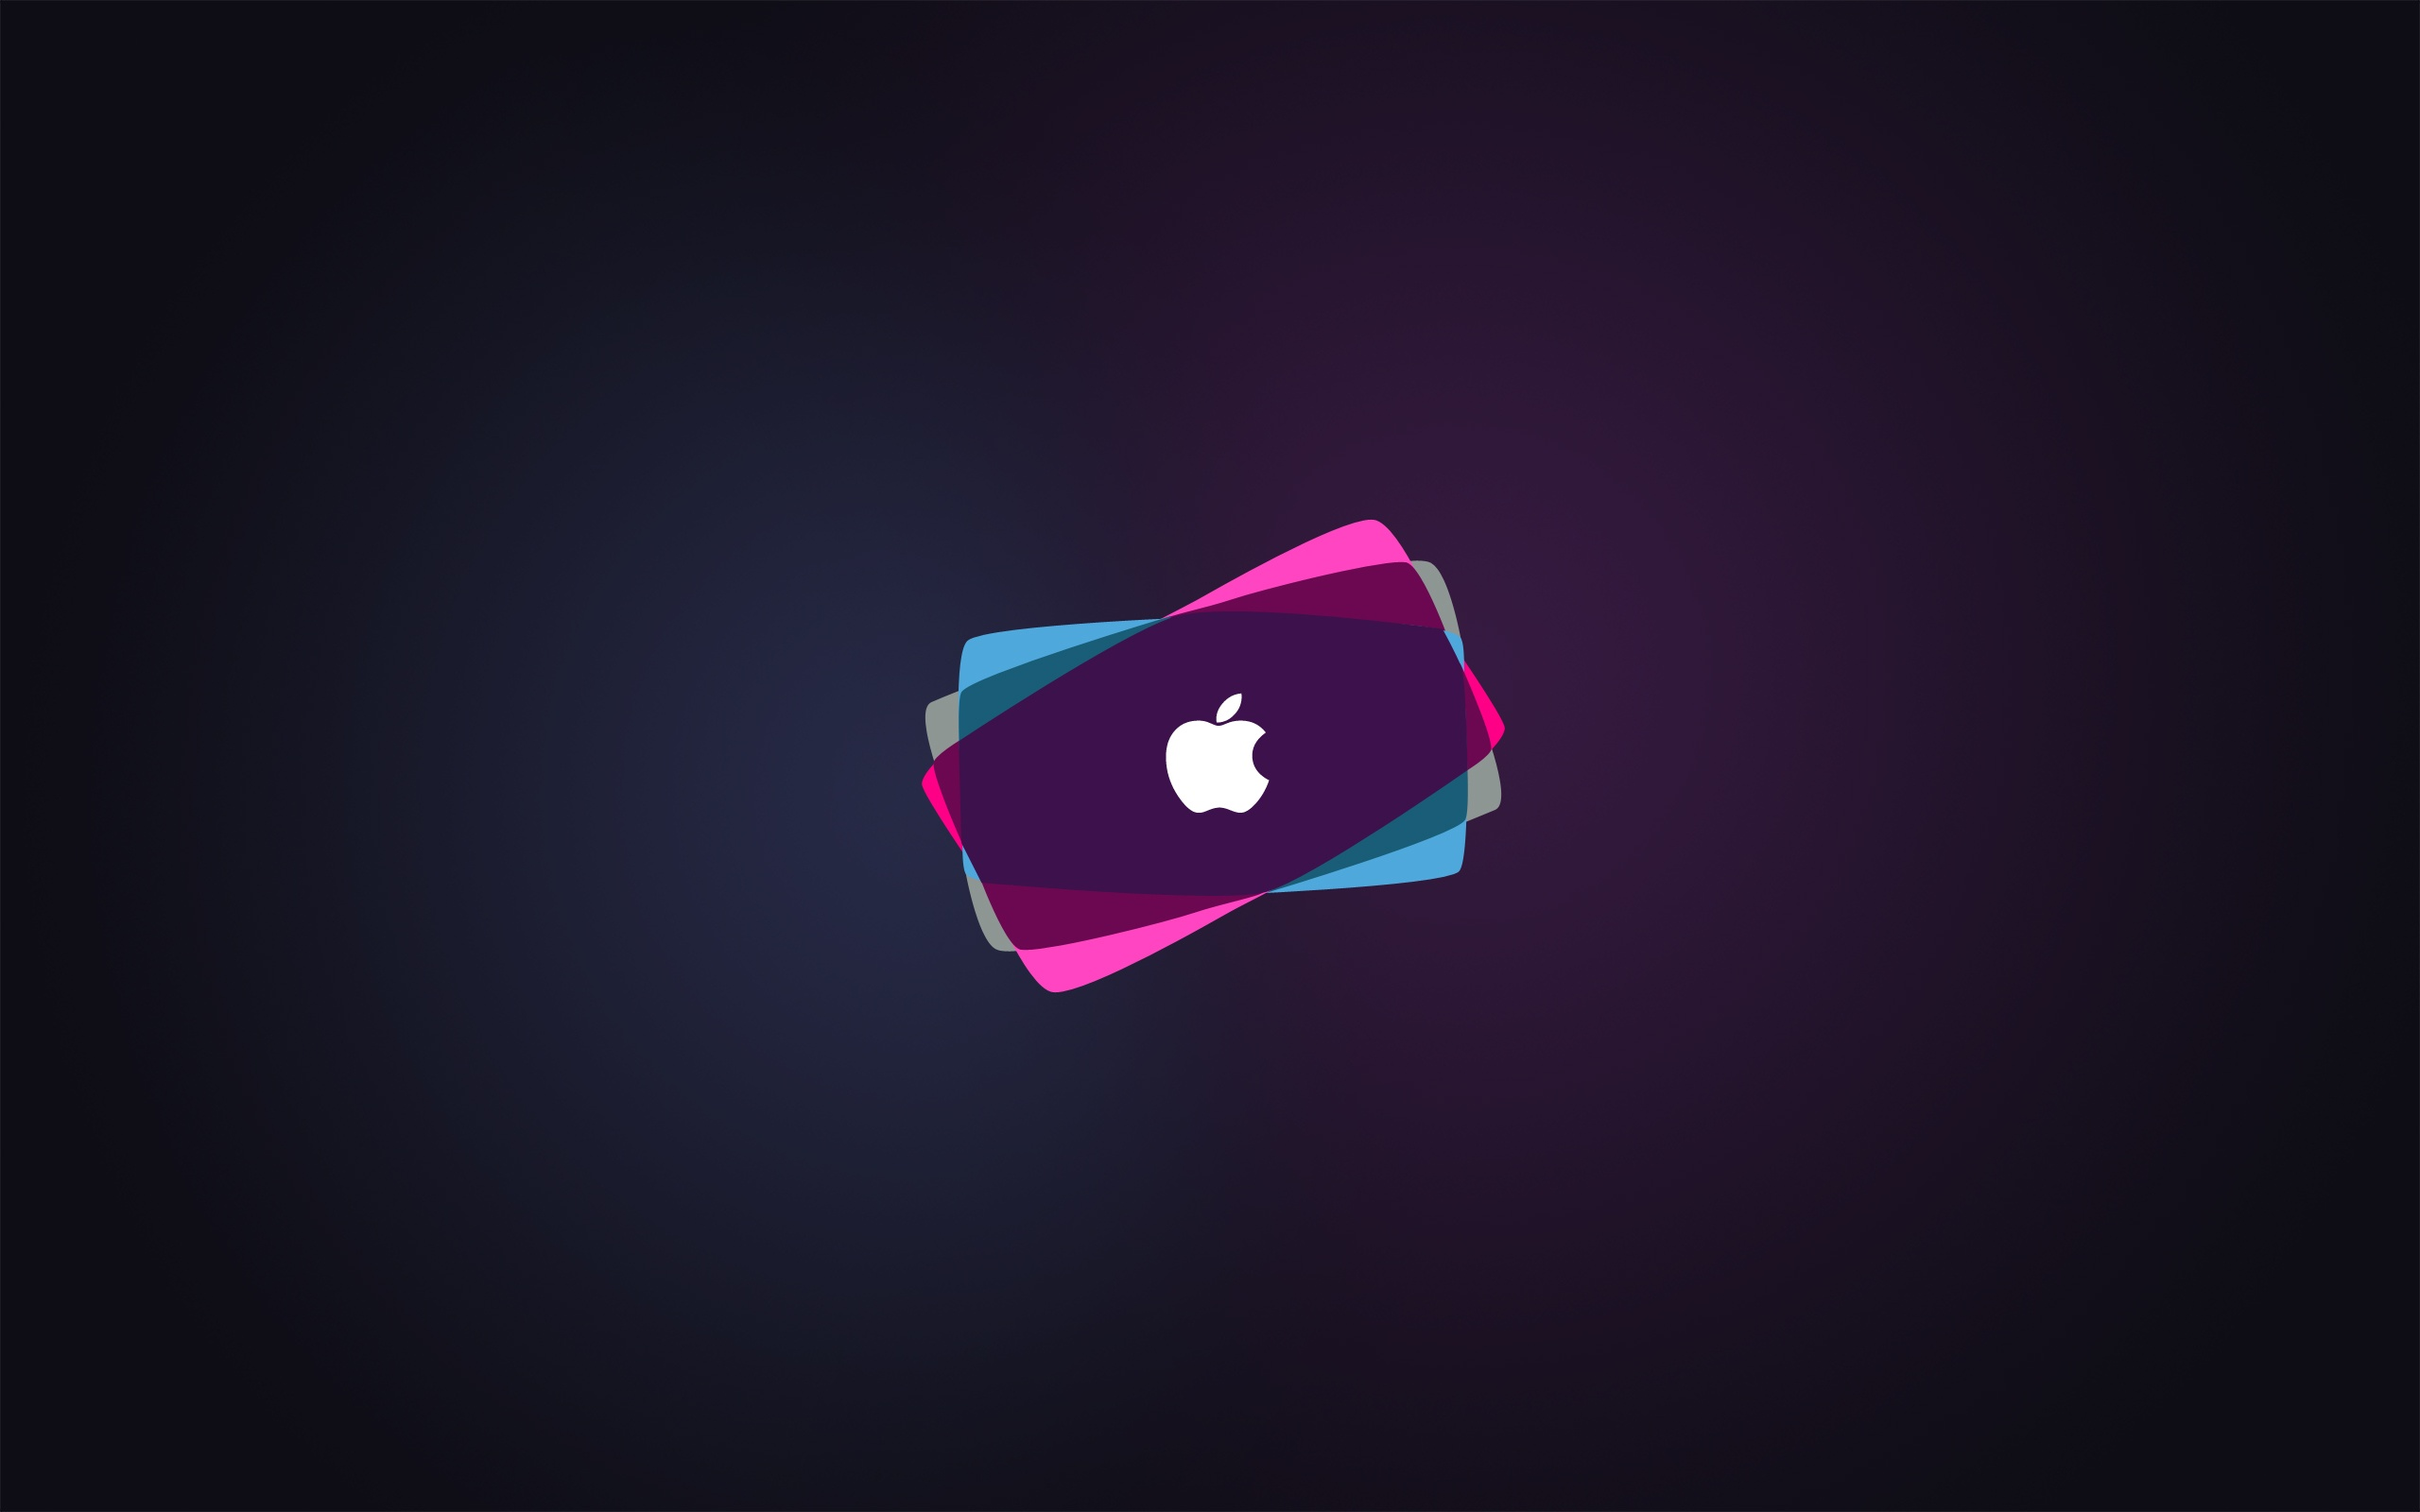 Apple TV Wallpapers HD Wallpapers 2560x1600